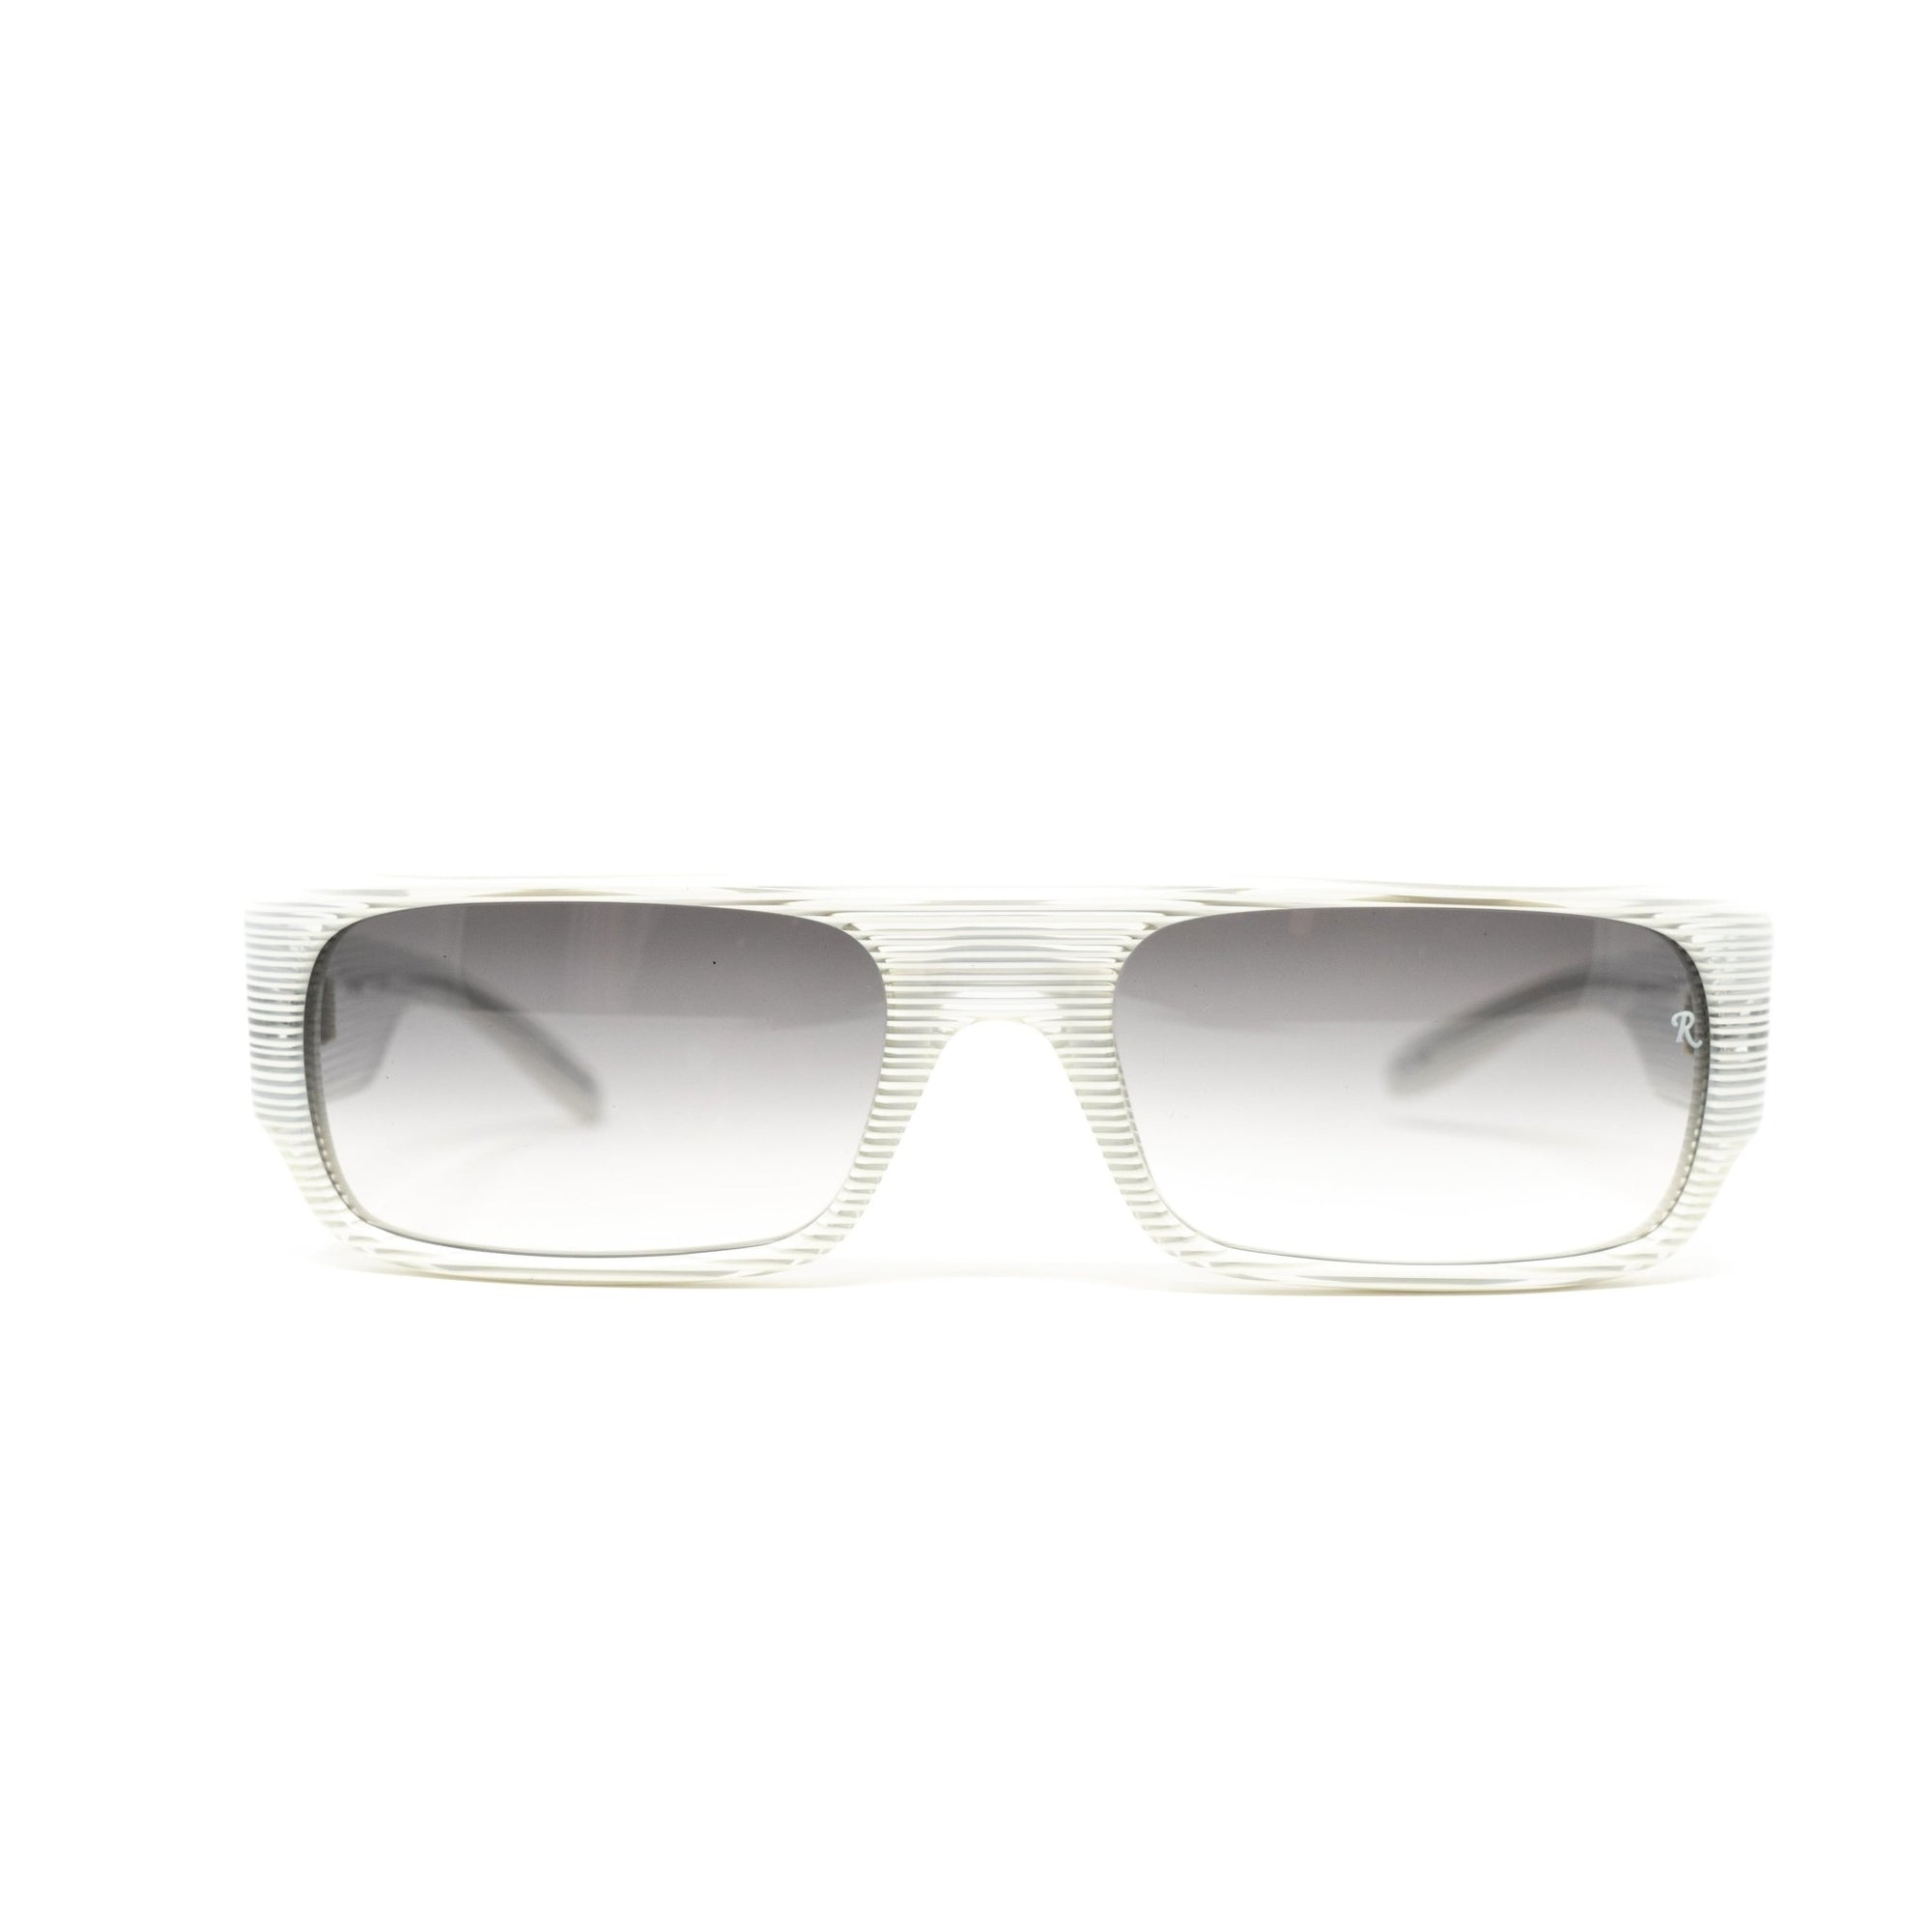 Raf Simons Sunglasses Flat Top White Stripes and Grey Lenses - 9RAF9C4WHITECLEAR - Watches & Crystals